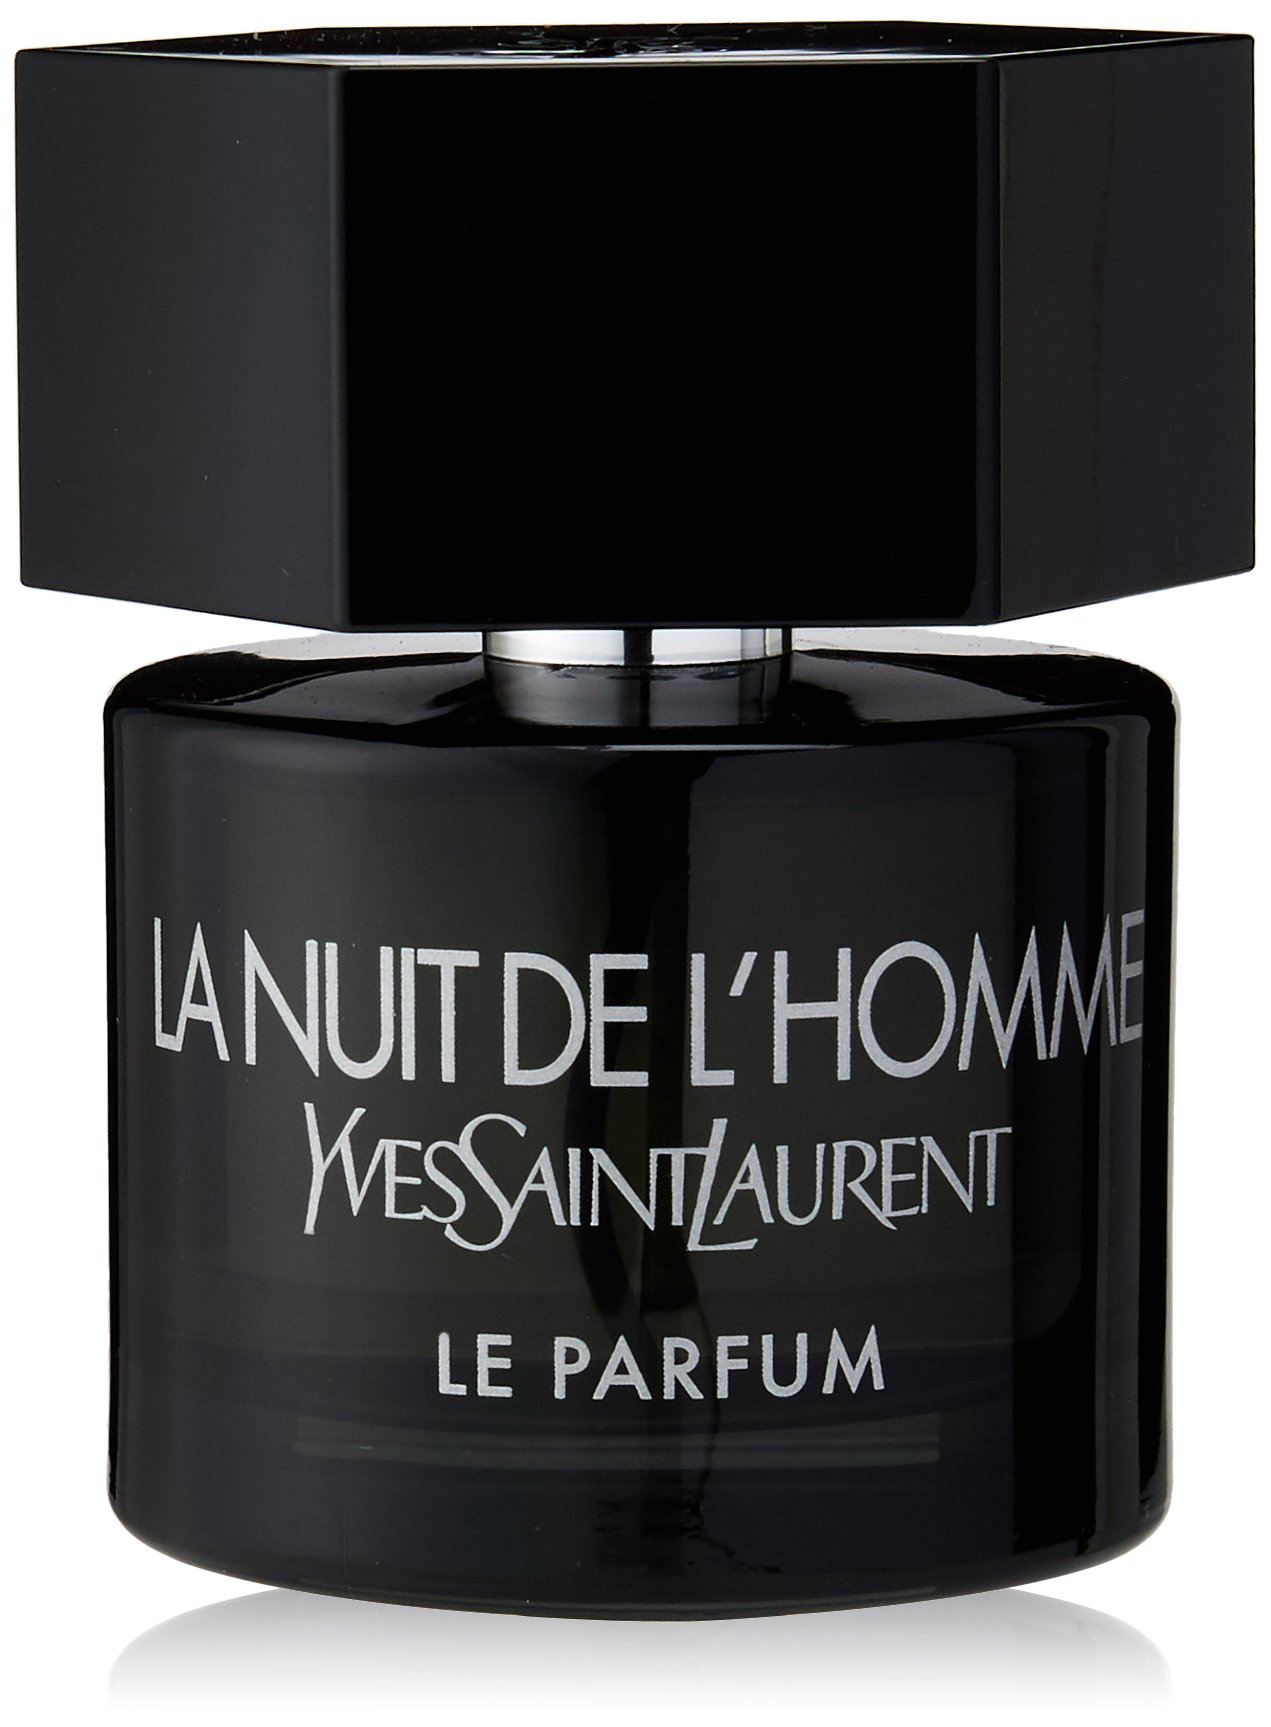 Yves Saint Laurent La Nuit De L'Homme Ysl Le Parfum Eau De Parfum Spray for Men, 2 Ounce